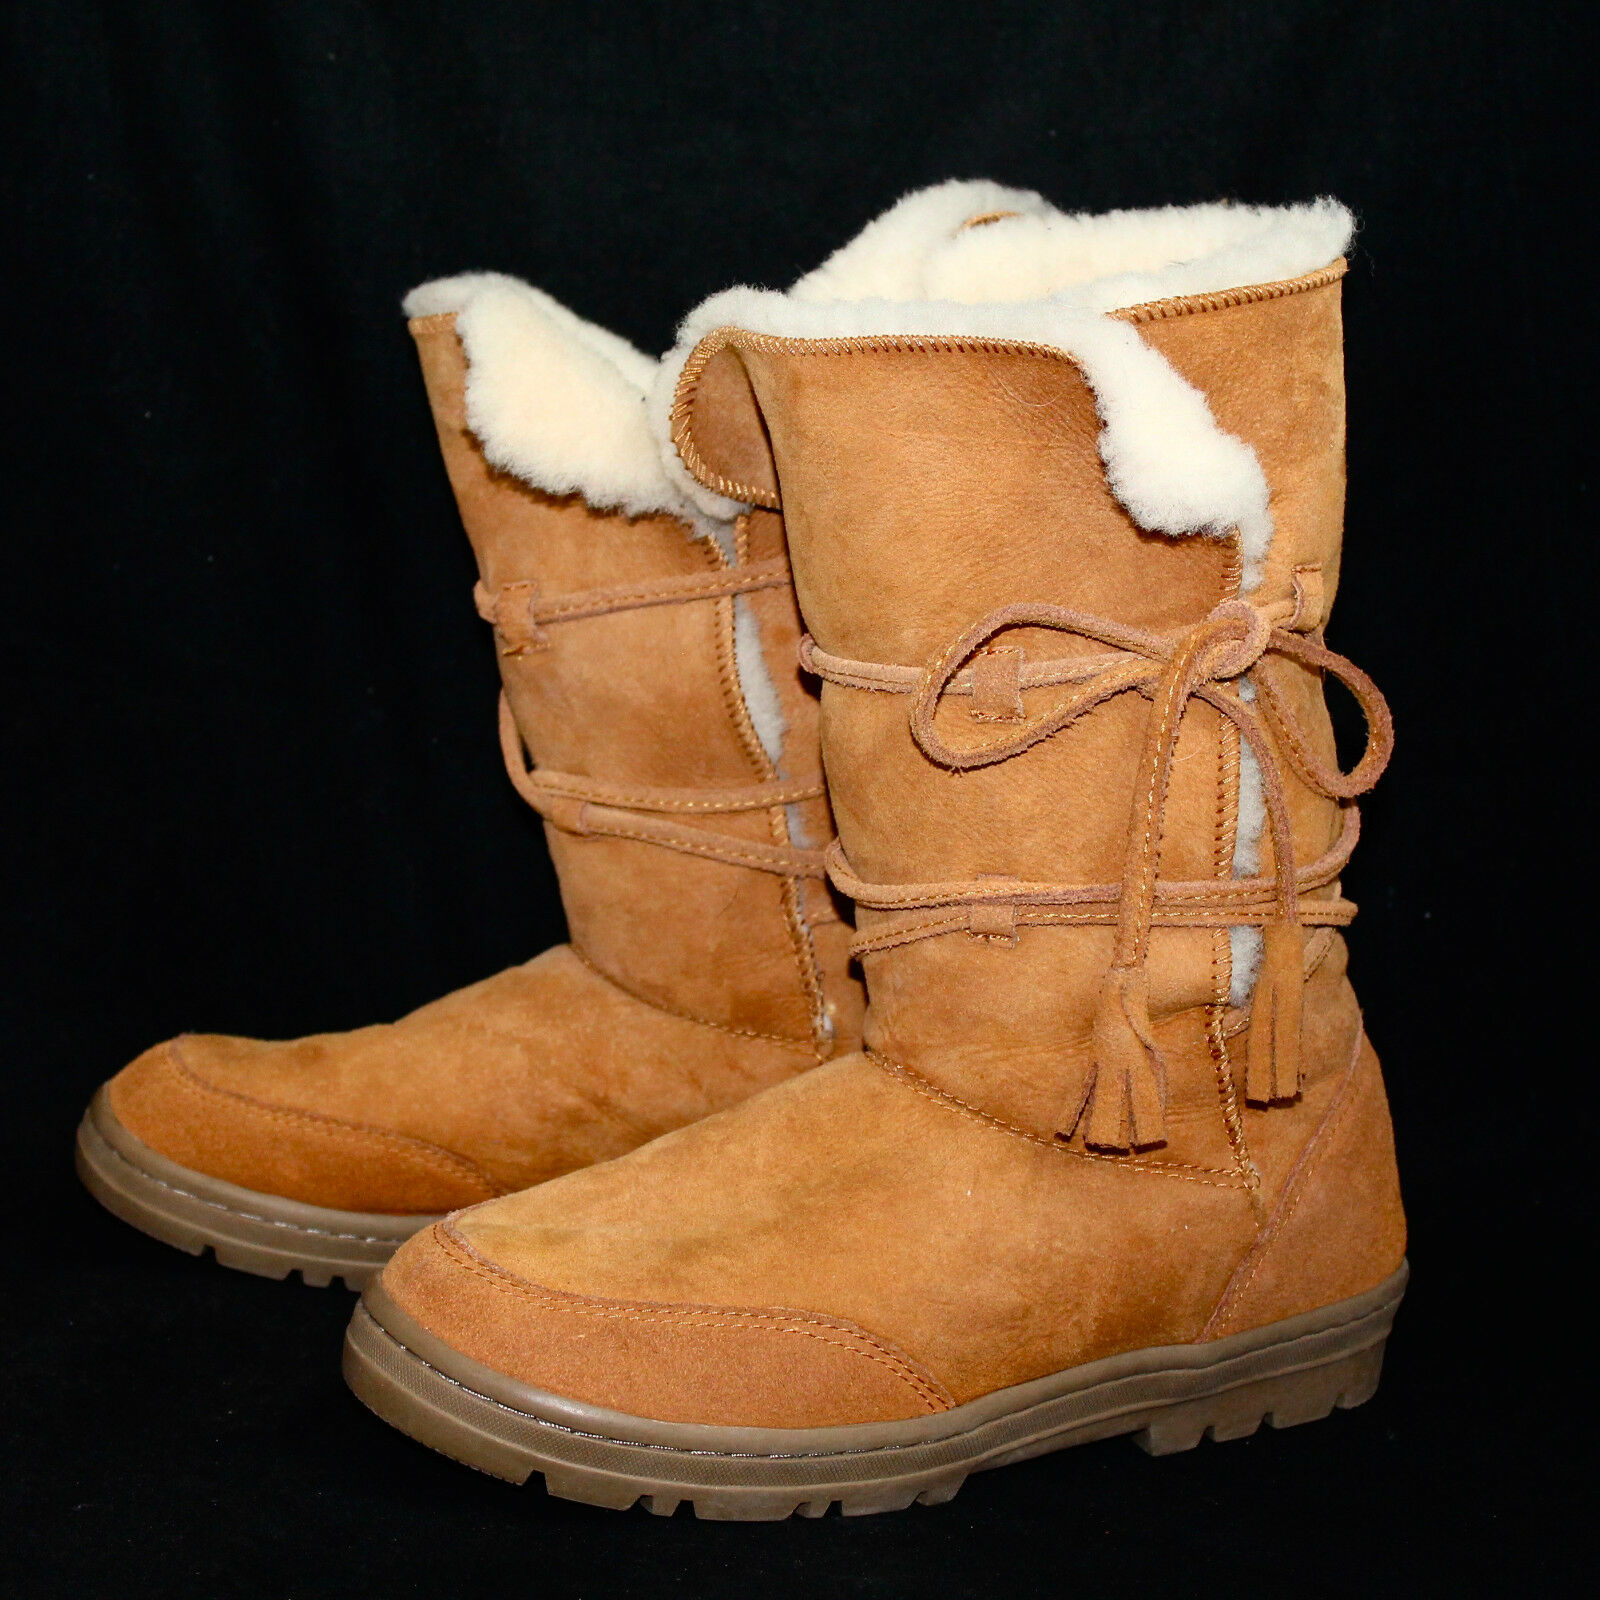 J CREW Suede & Shearling Lined Boot Wo's 9M Tan Chestnut w  Wrap Around Lace